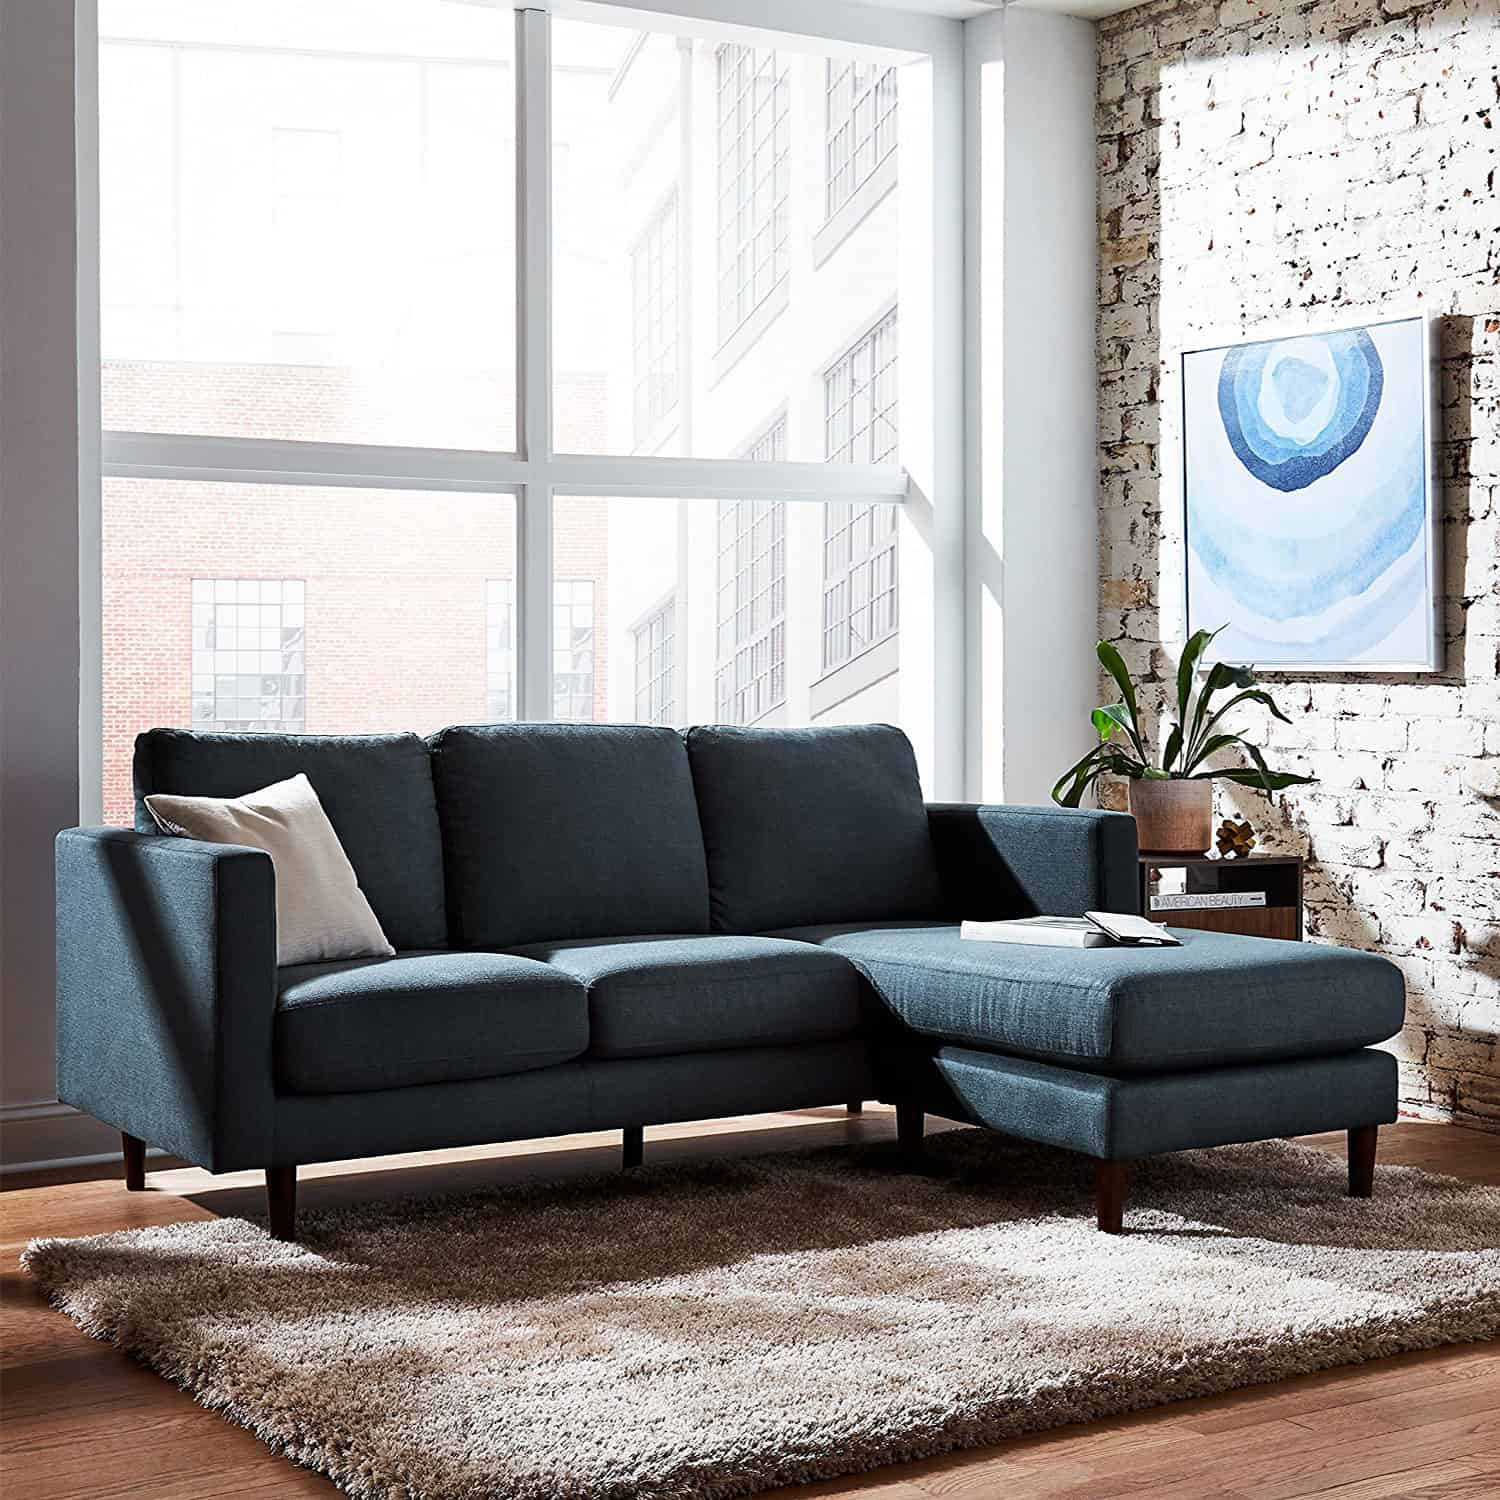 Page Furniture: Revolve Rivet Modern Reversible Chaise Sectional